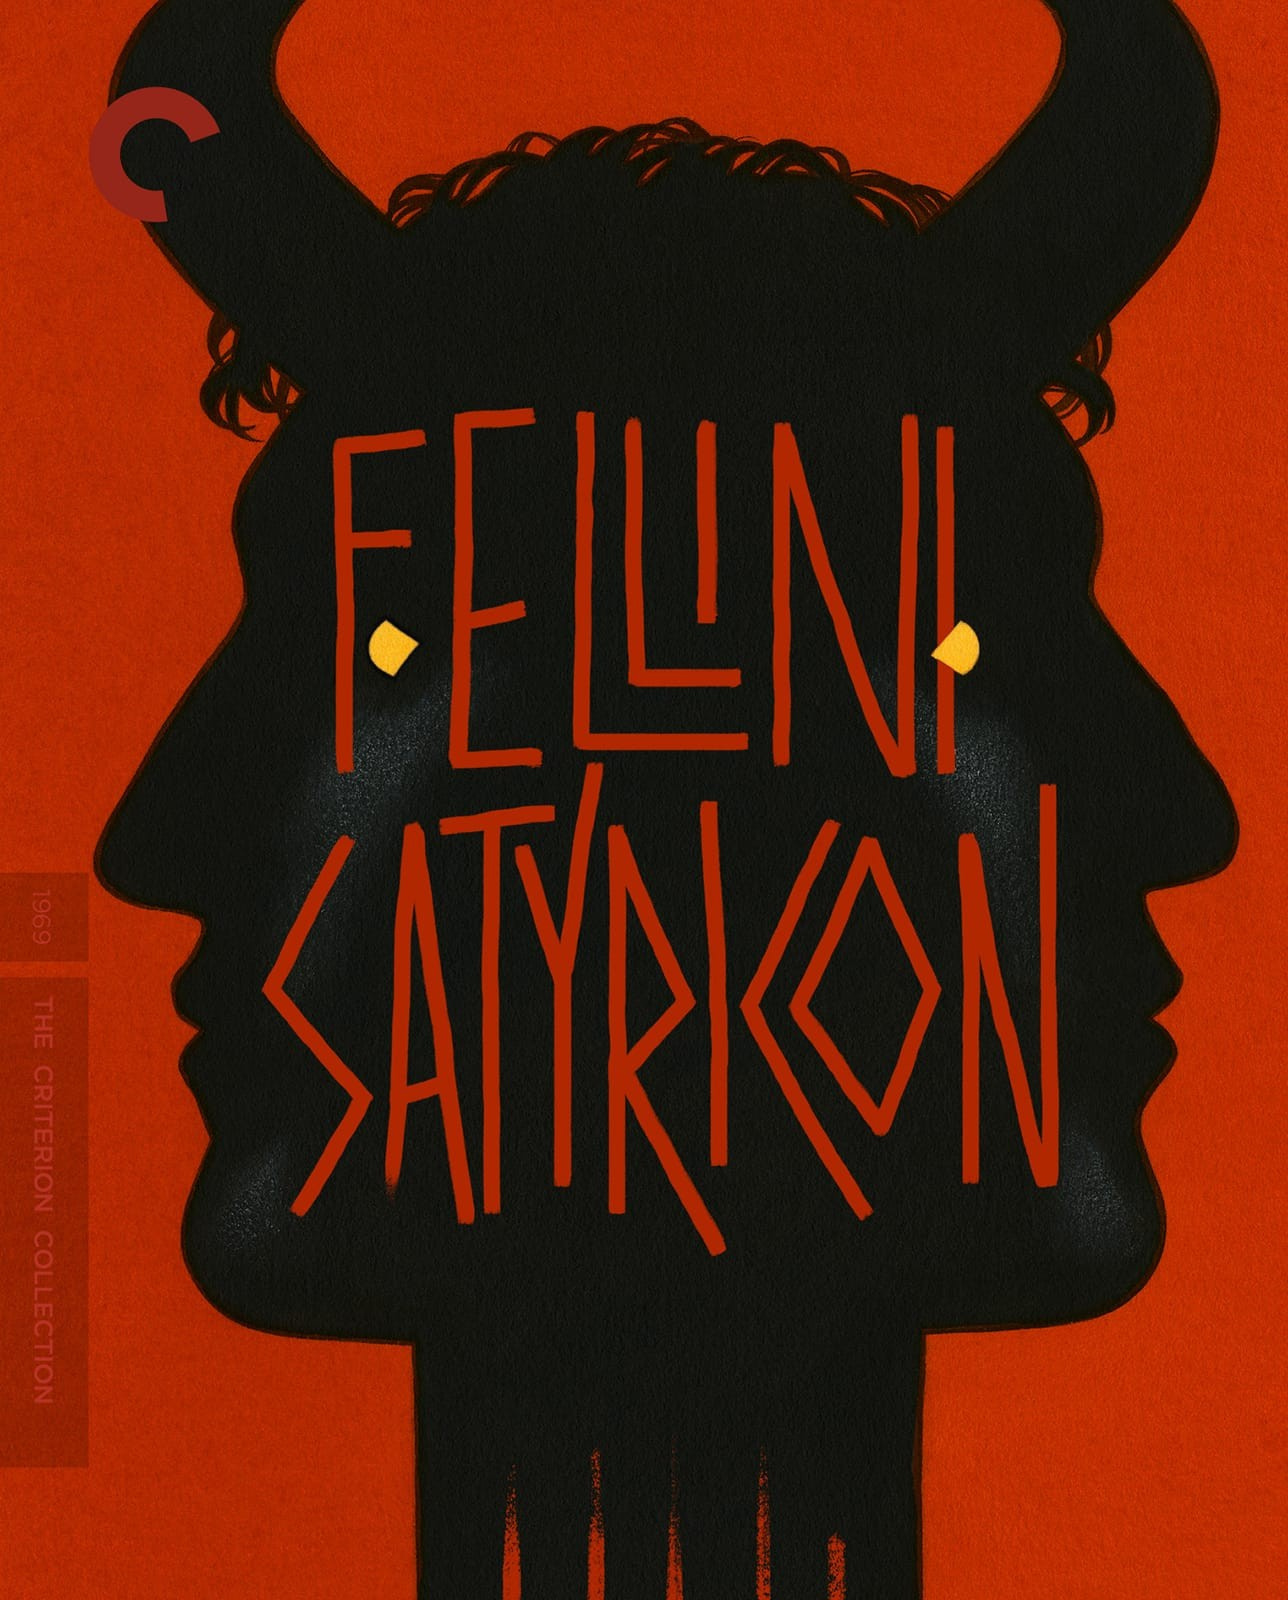 Fellini Satyricon (1969) - Directed by: Federico FelliniStarring: Martin Potter, Hiram Keller, Max BornRated: RRunning Time: 2 h 9 mTMM Score: 4 stars out of 5STRENGTHS: Directing, Production Design, CinematographyWEAKNESSES: Emotional Connection, Pacing